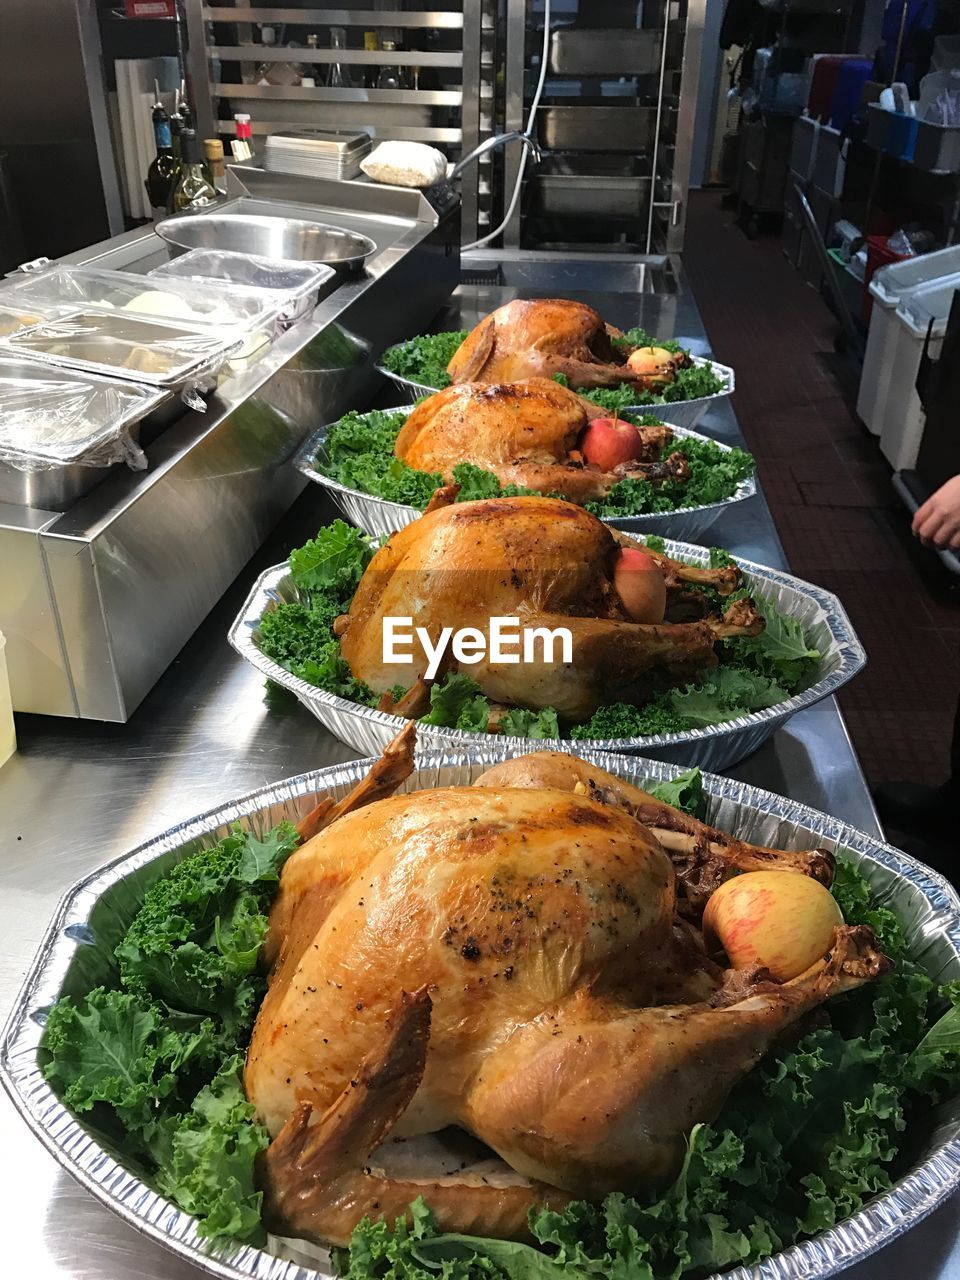 High angle view of roasted chickens in plates with lettuce and apples on kitchen counter at restaurant